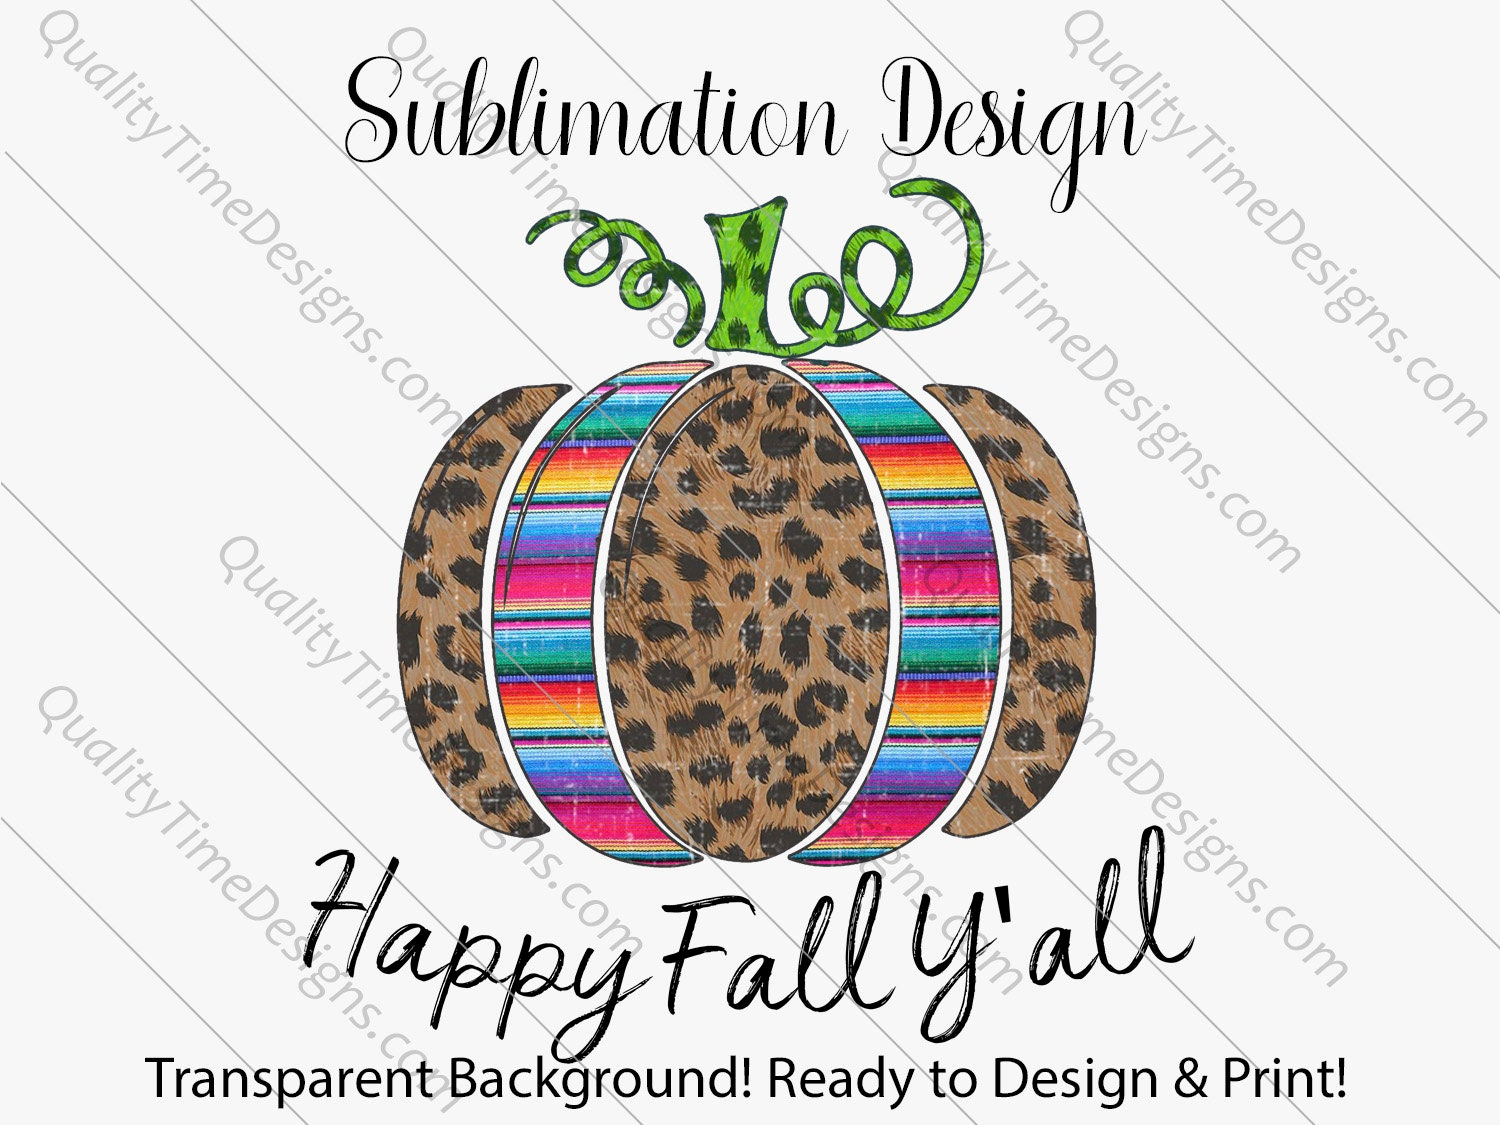 photograph about Happy Fall Yall Printable named Printable Sublimation Models - Pleased Drop Yall Serape